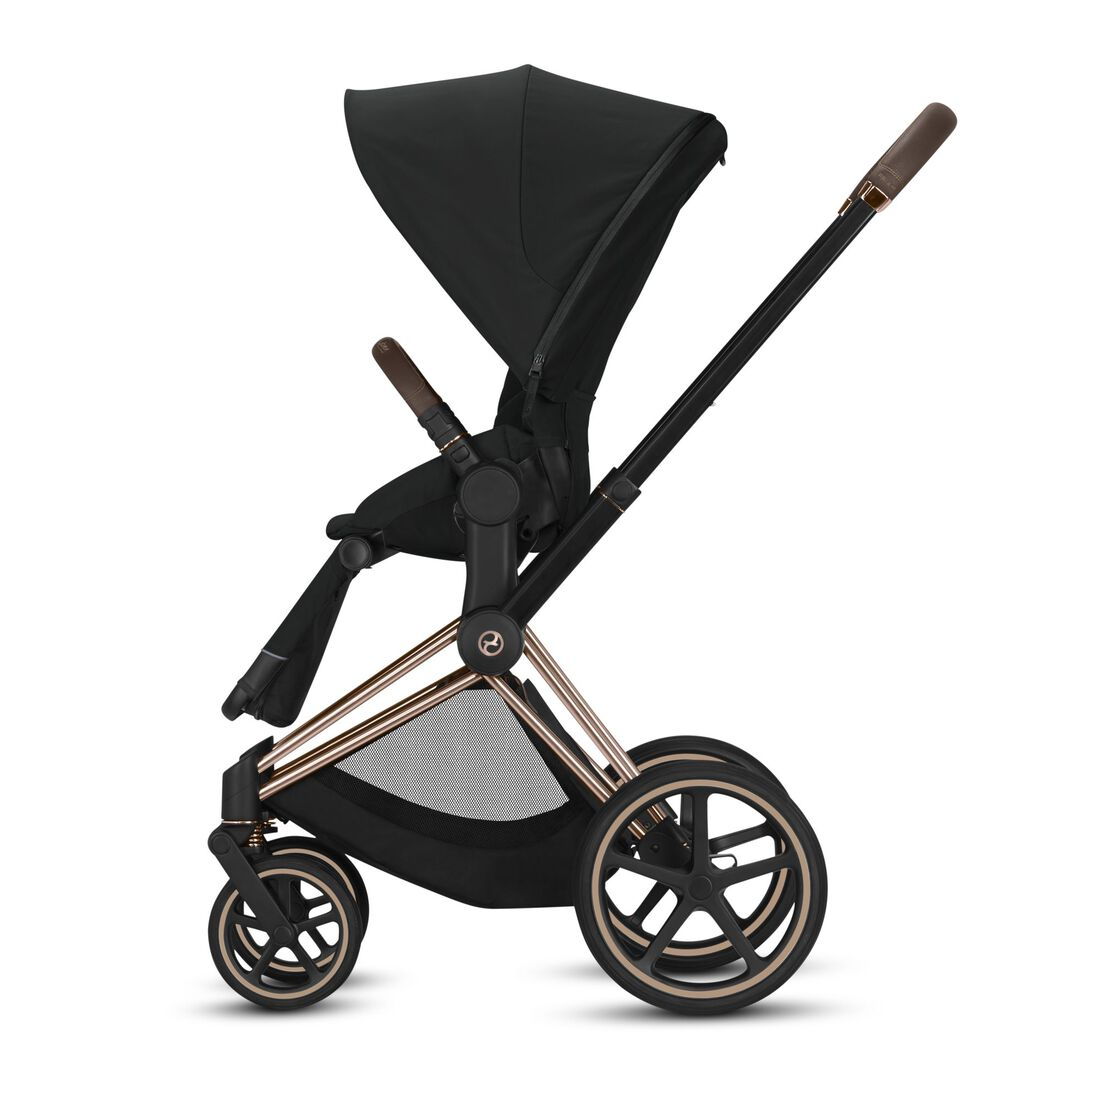 CYBEX Eezy S+ 2 – One-hand recline function into full lie-flat position